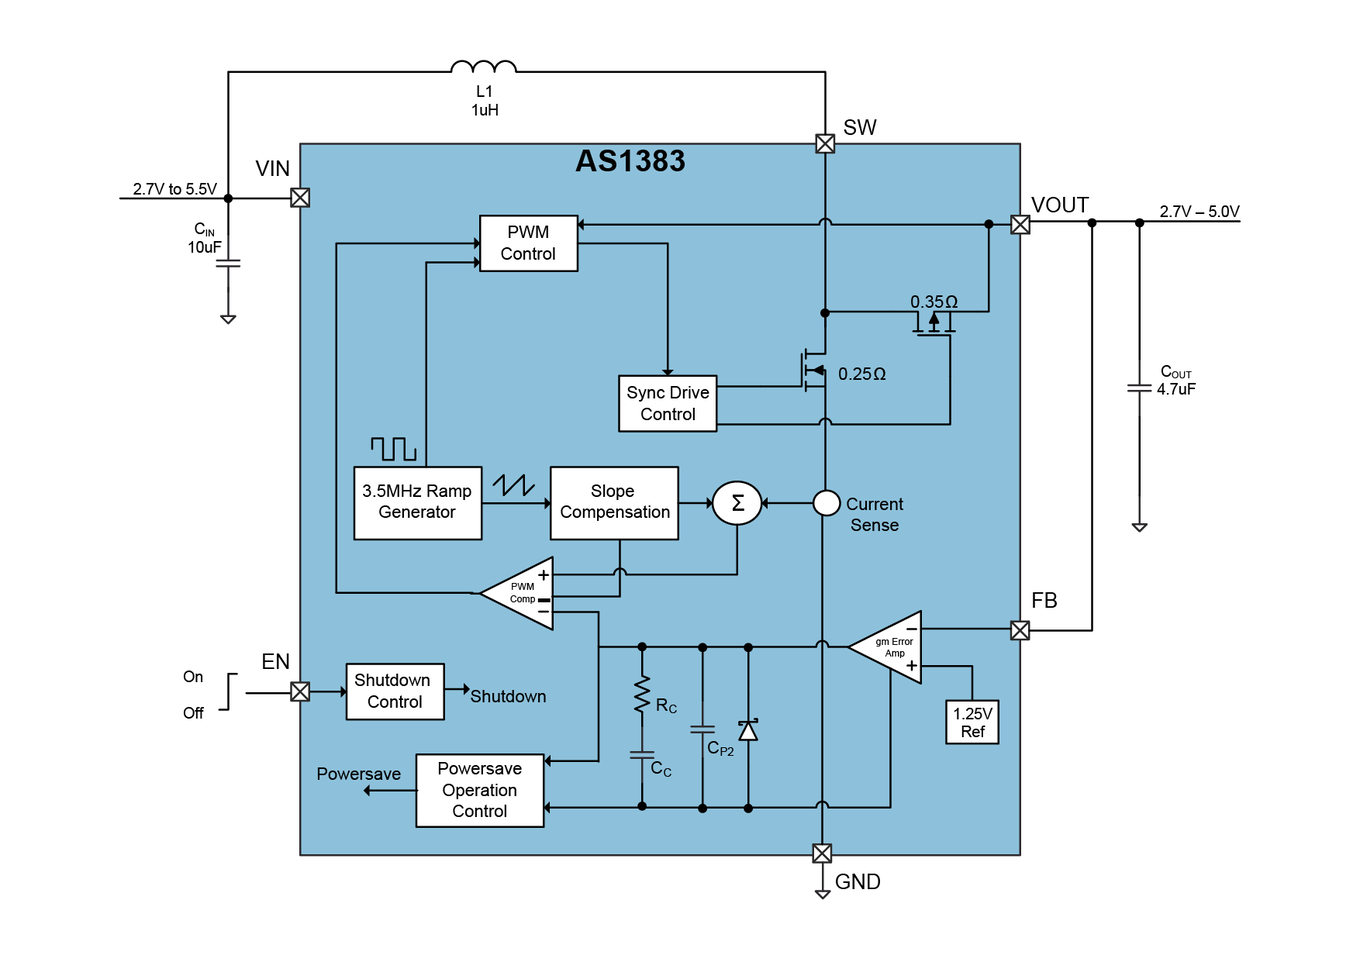 AS1383 Block Diagram